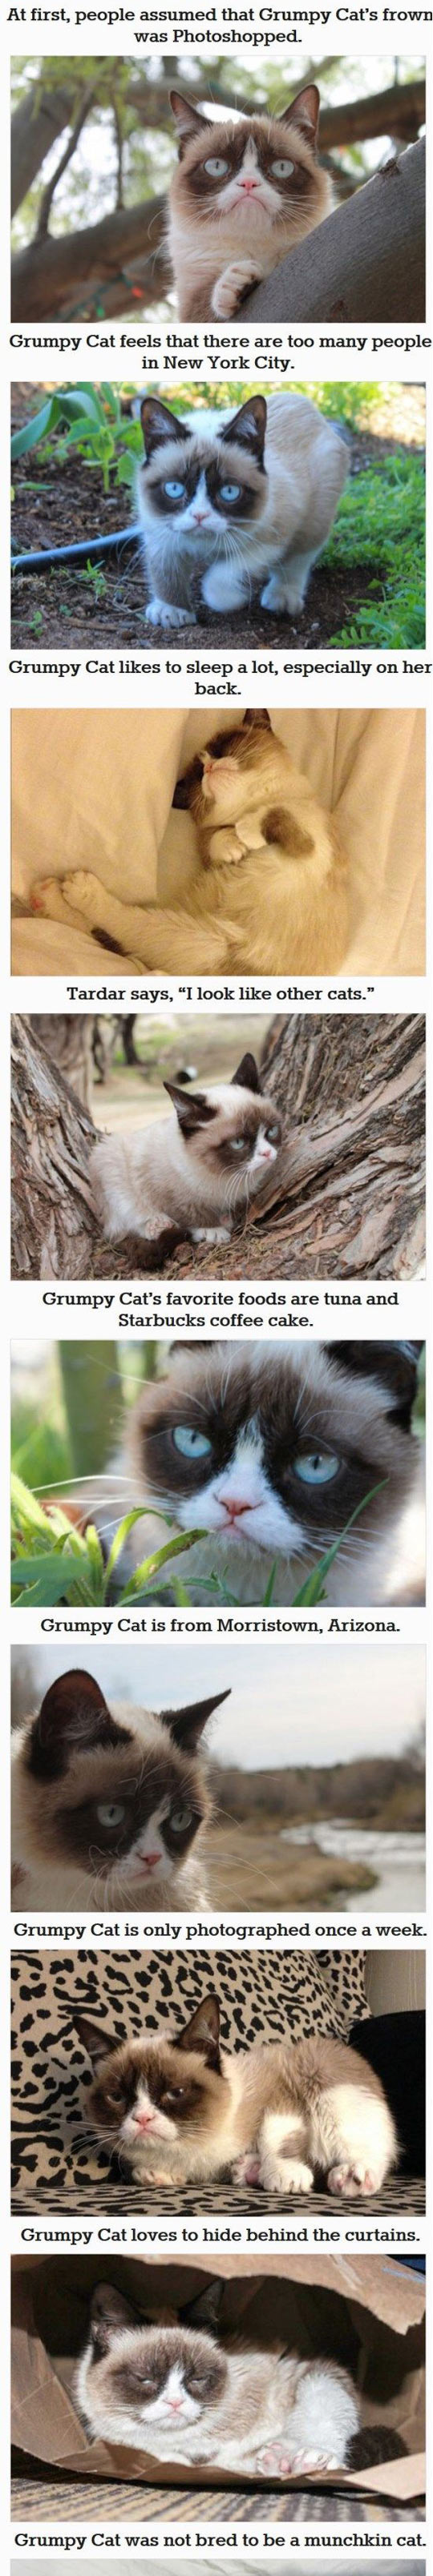 funny-Grumpy-cat-fact-you-dont-know-tree